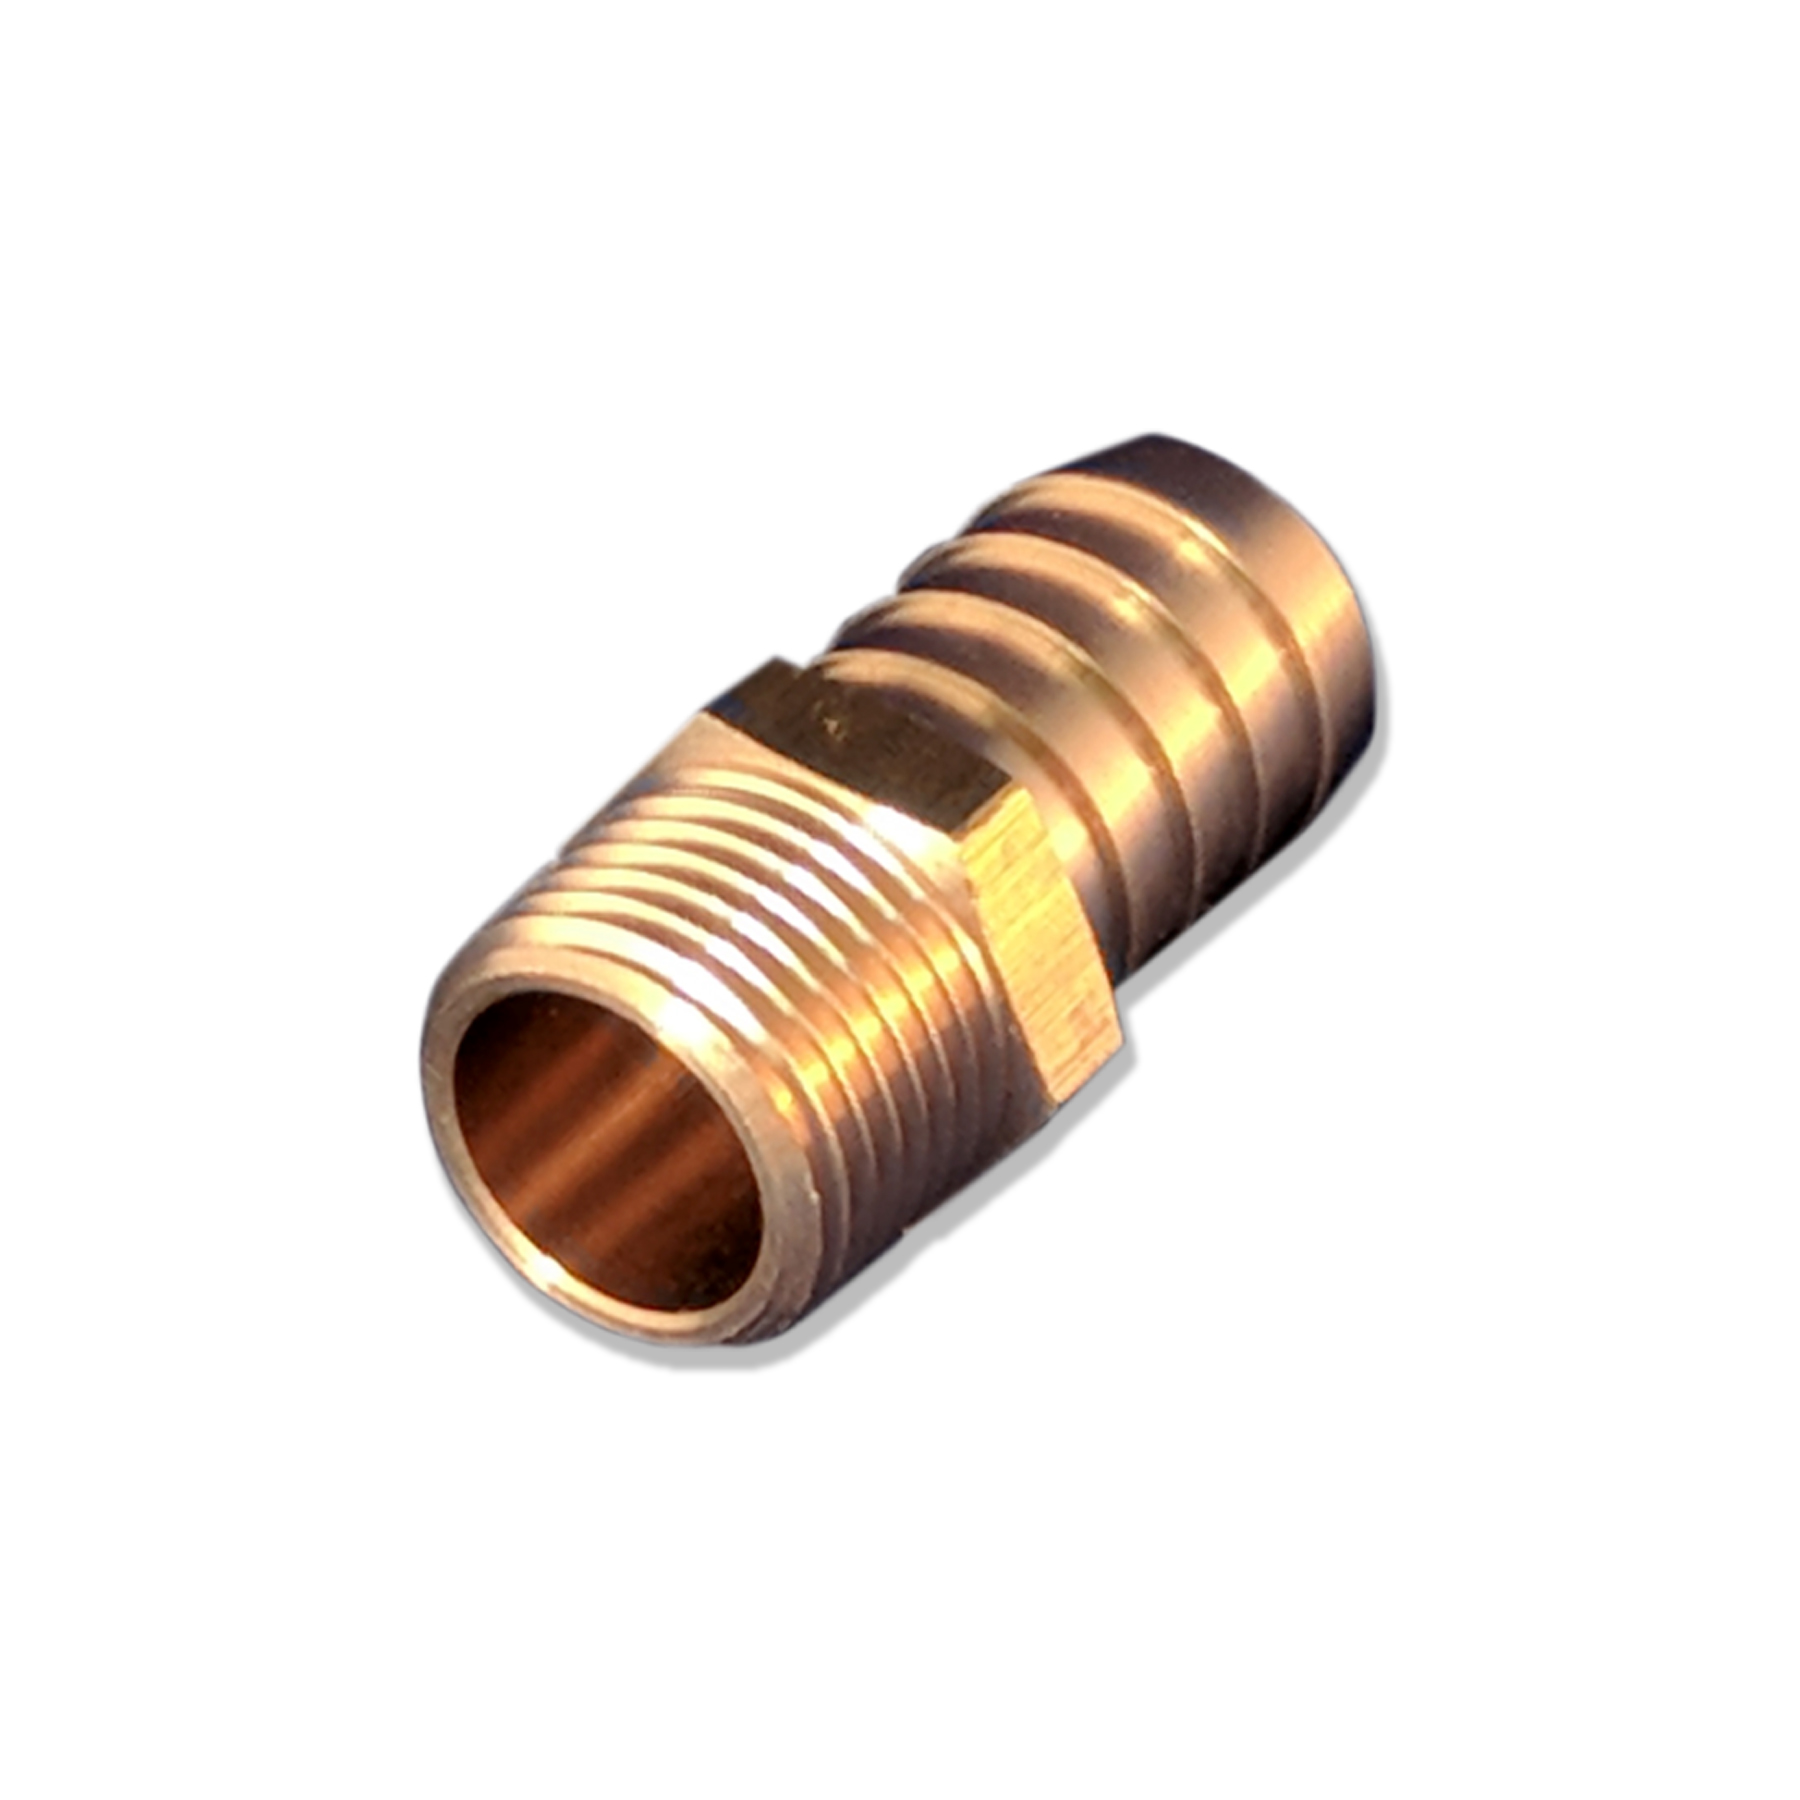 Hose Barb Fitting, 1/2 in. BSP x 19 mm